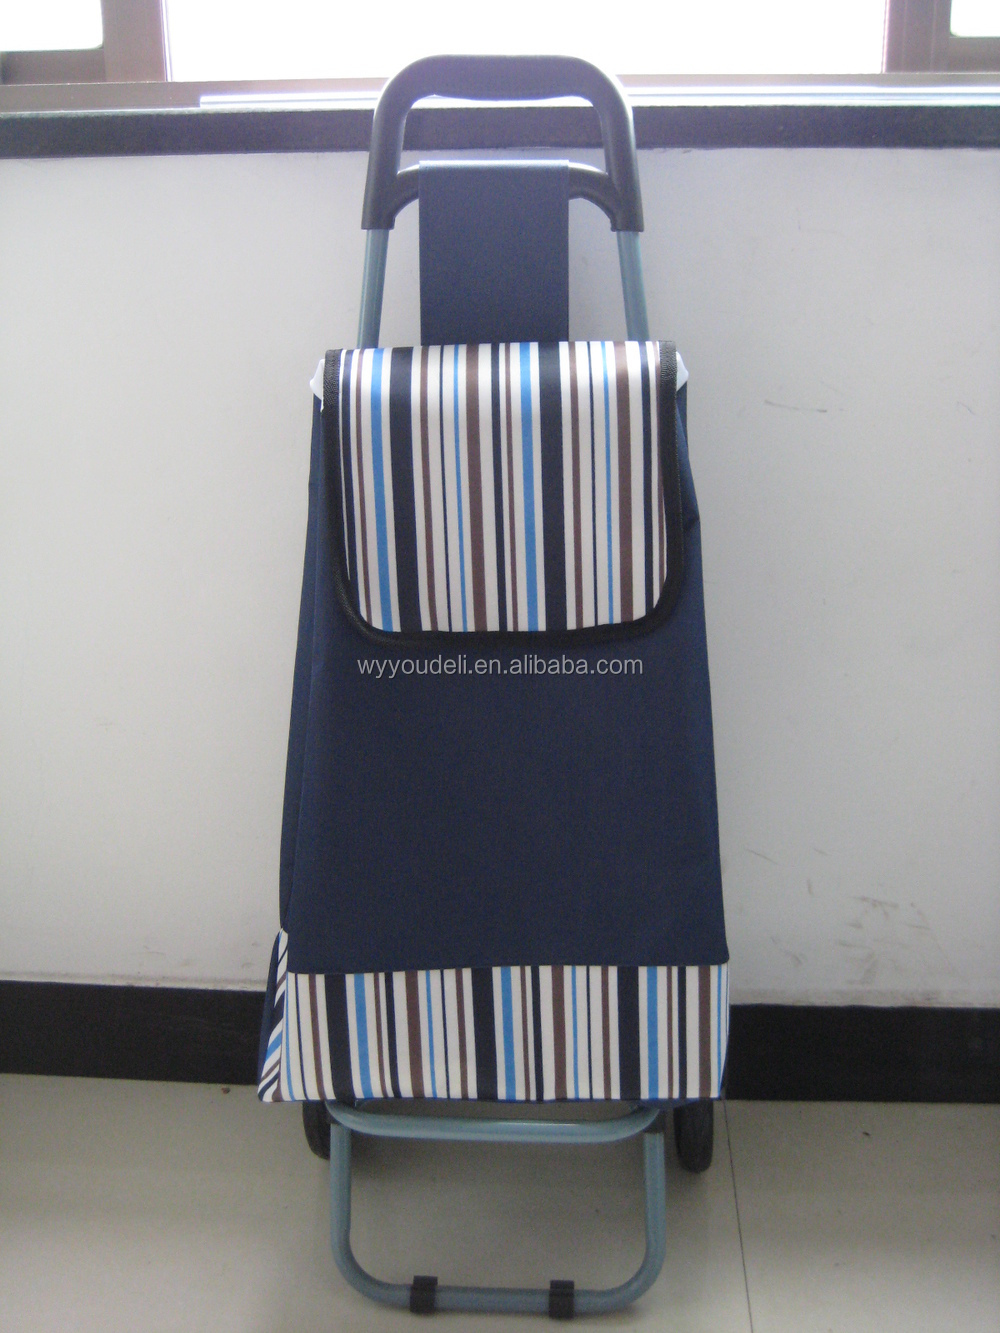 FLODING baby carry shopping basket